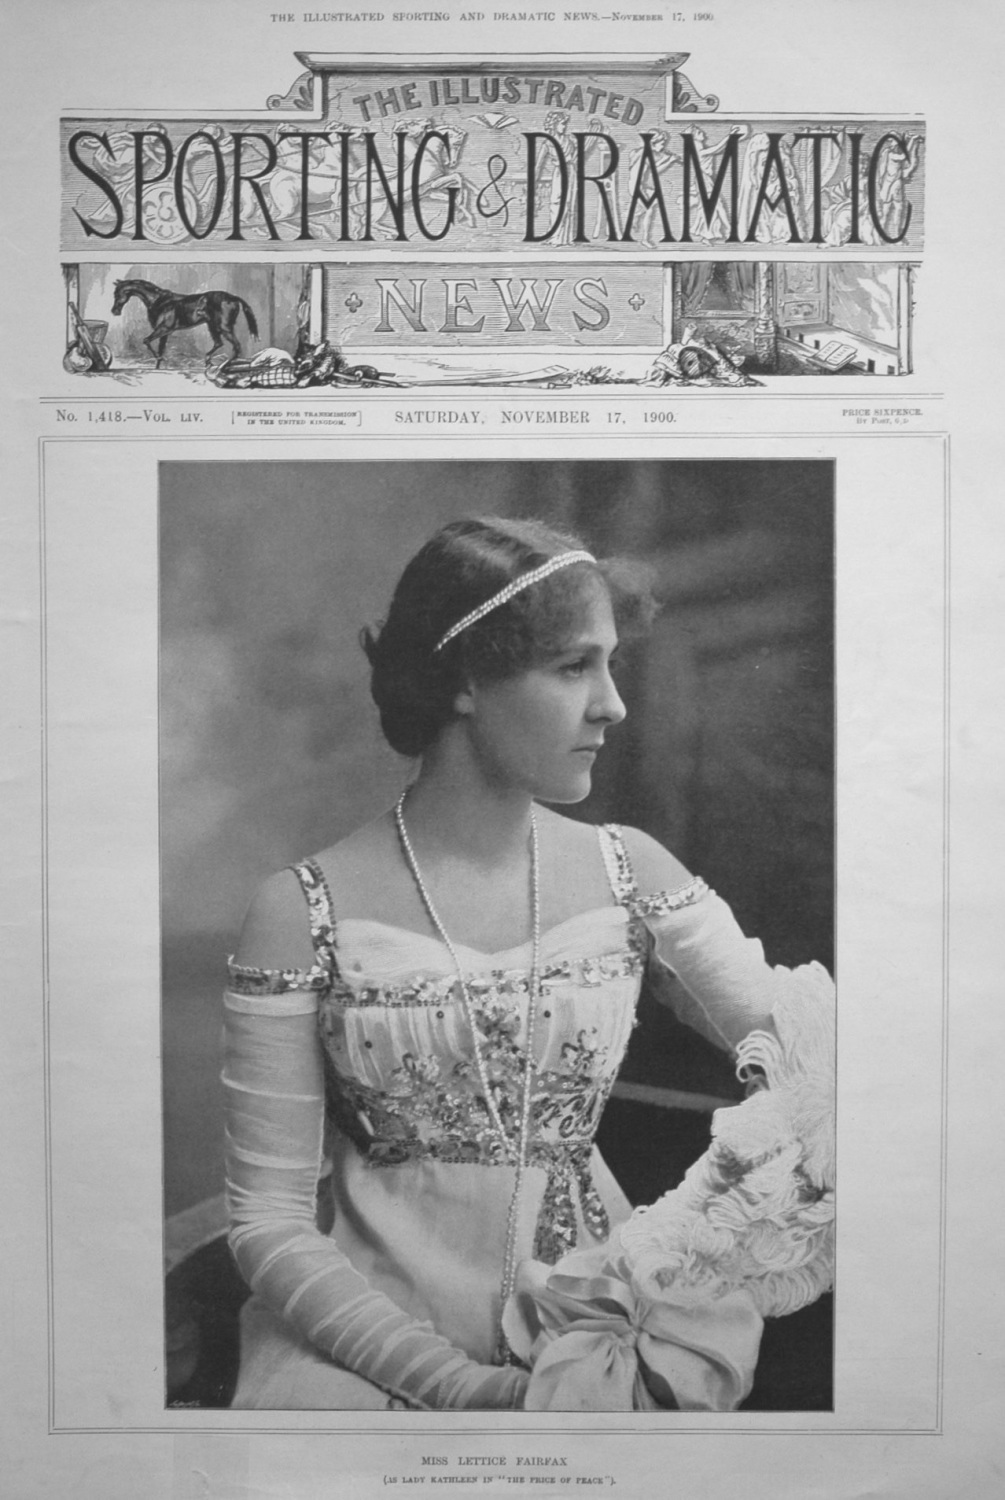 Miss Lettice Fairfax. November 1900